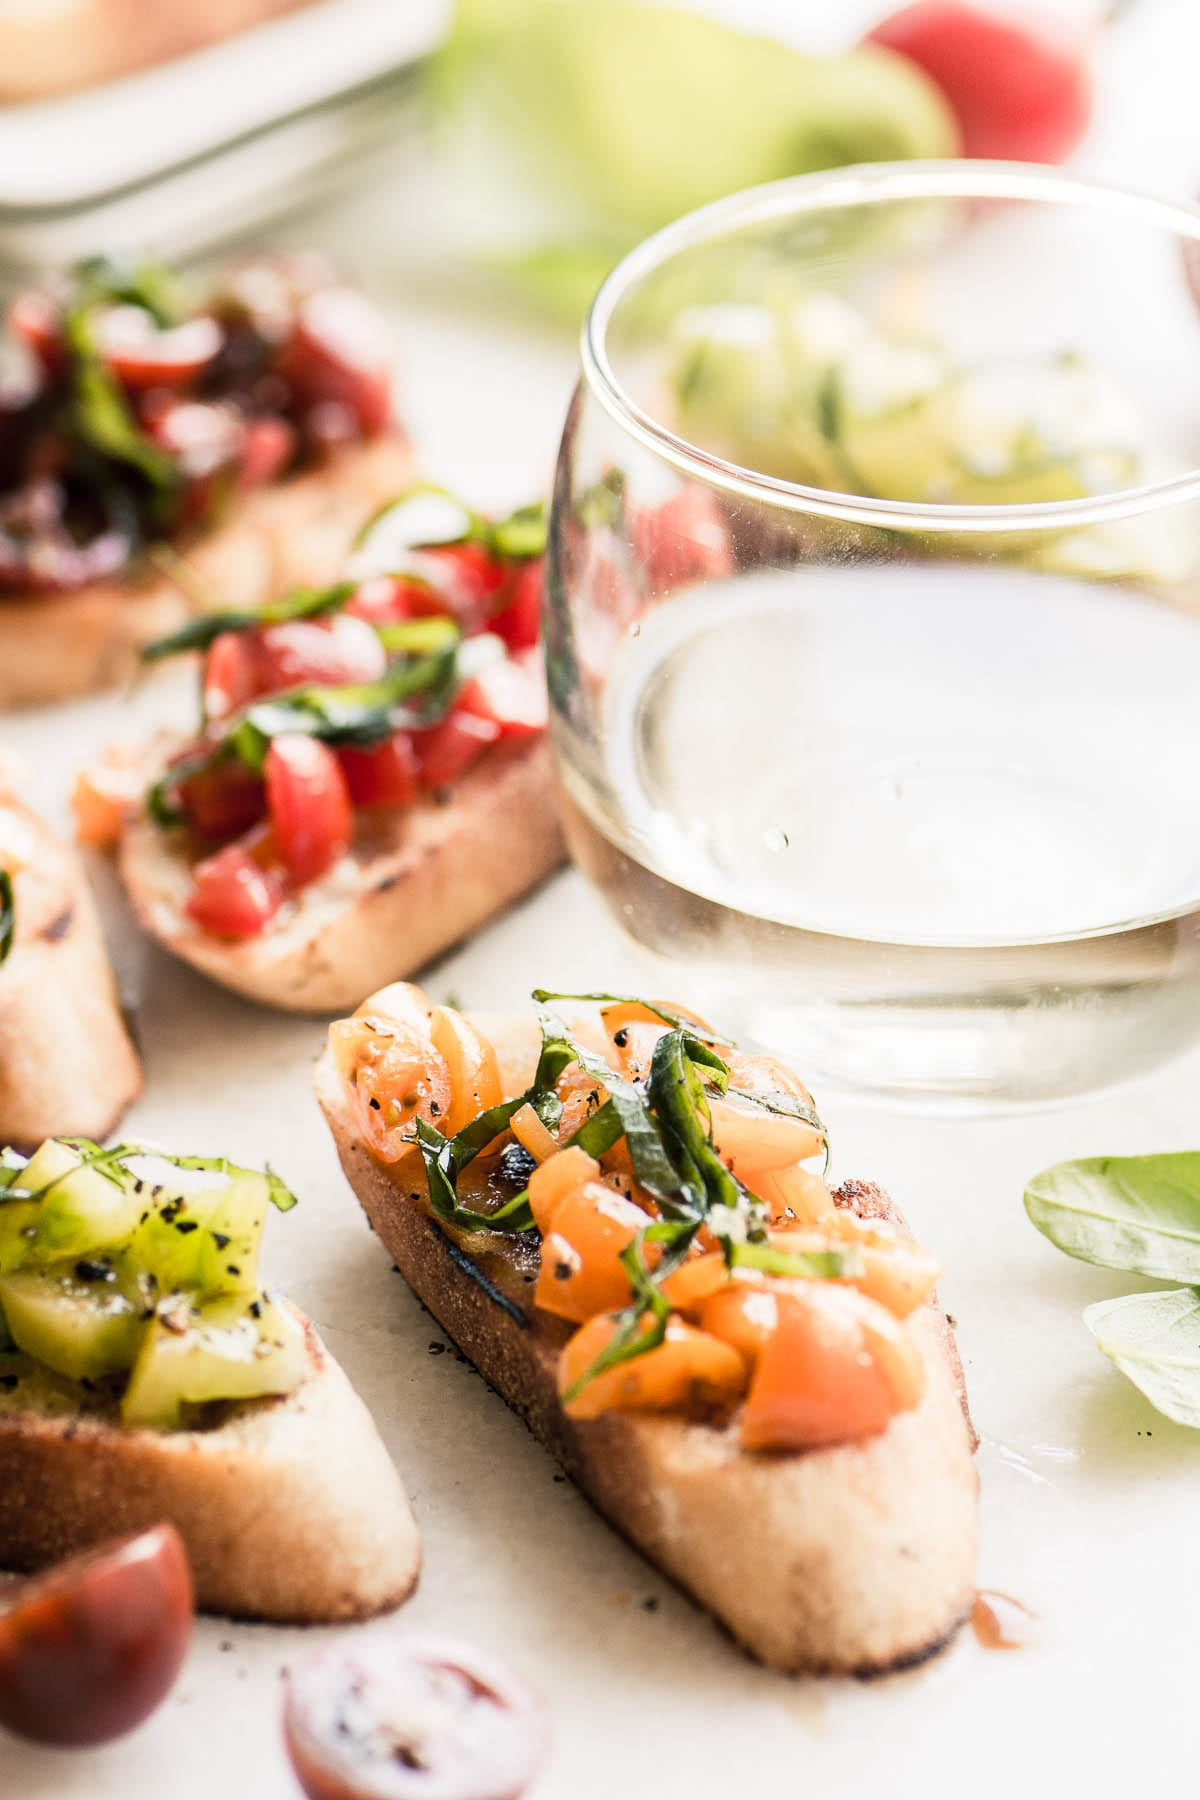 Tomato bruschetta with white wine